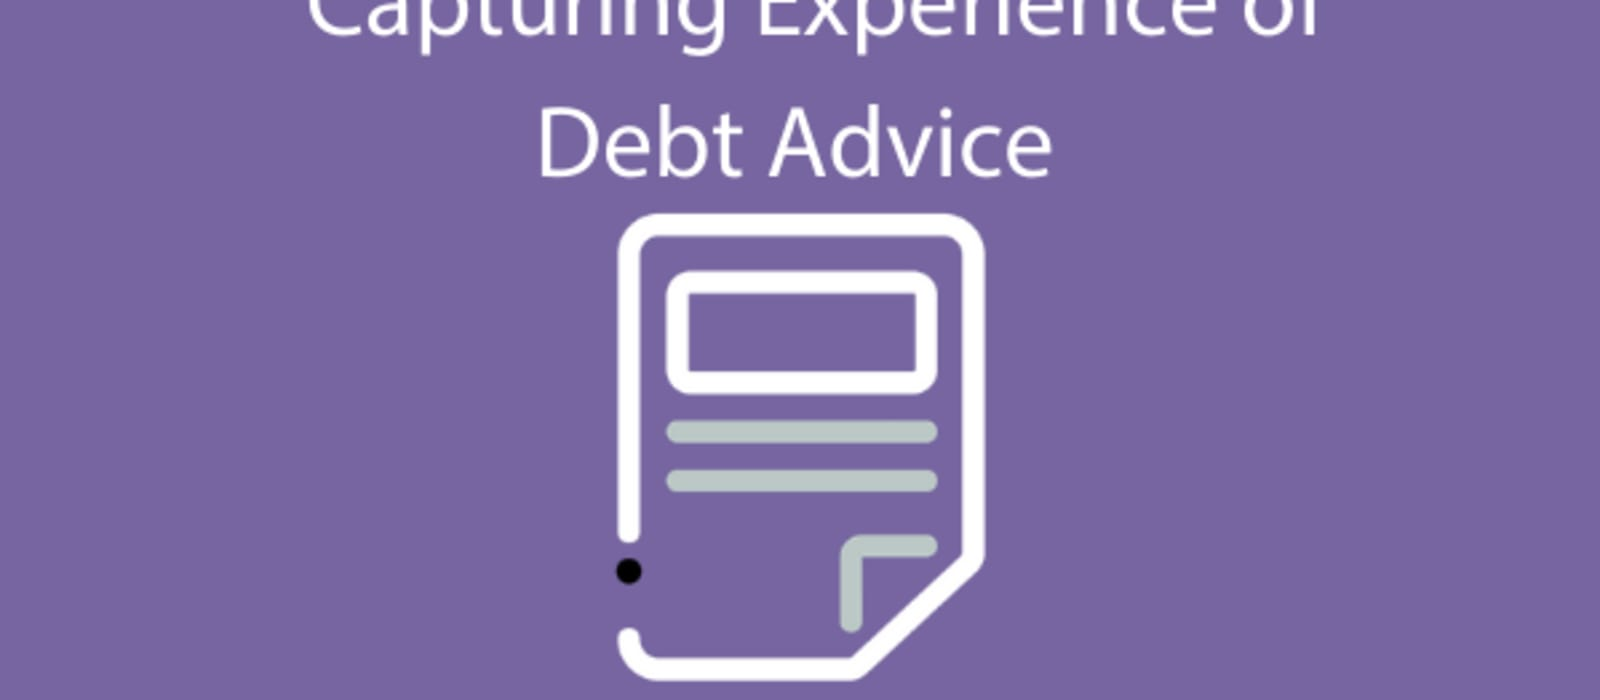 Capturing Experience of Debt Advice